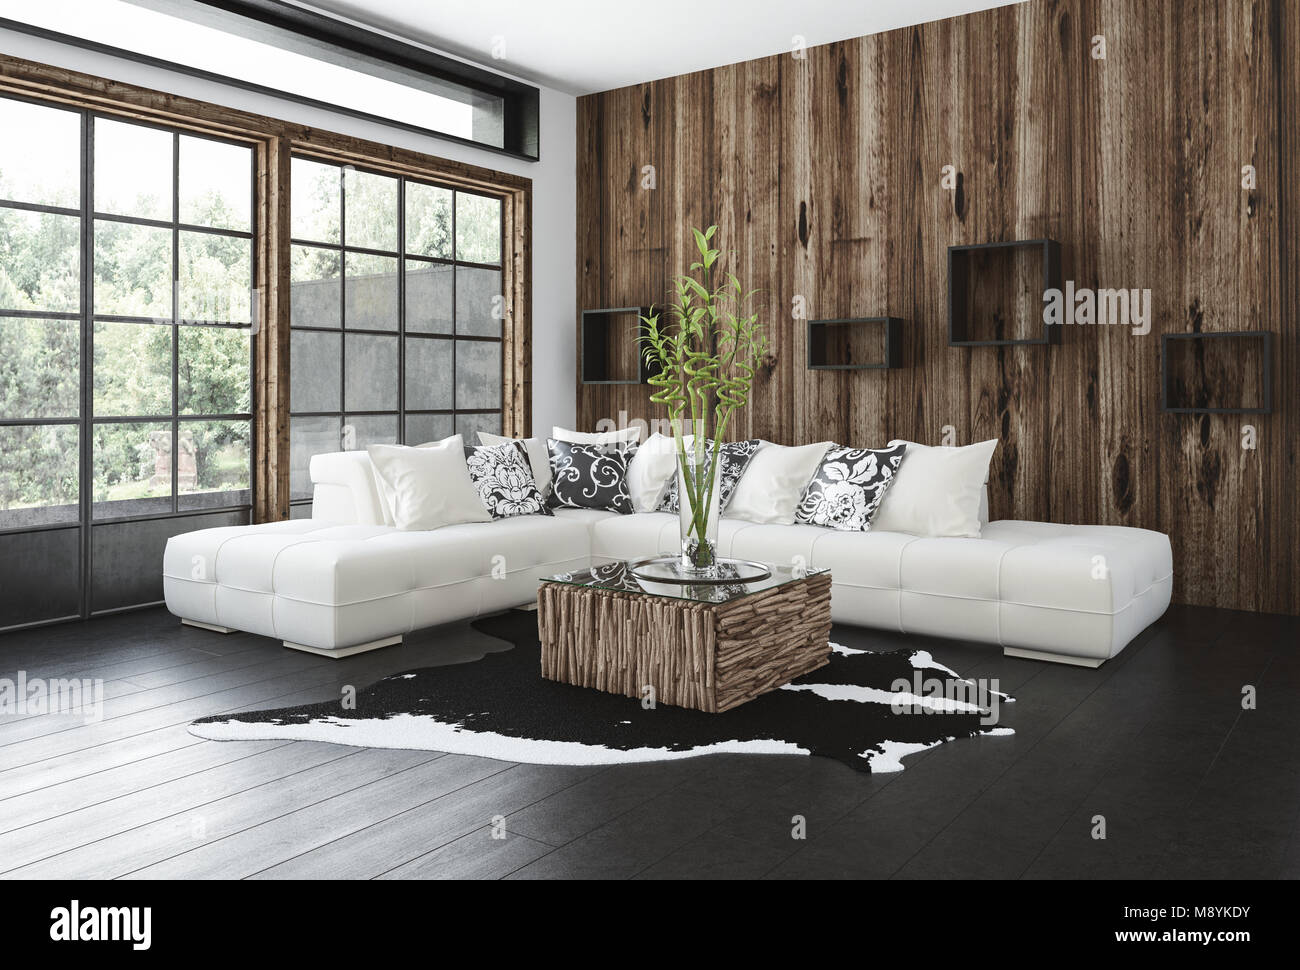 Stylish Rustic Living Room With Wood Paneling On The Wall And Window